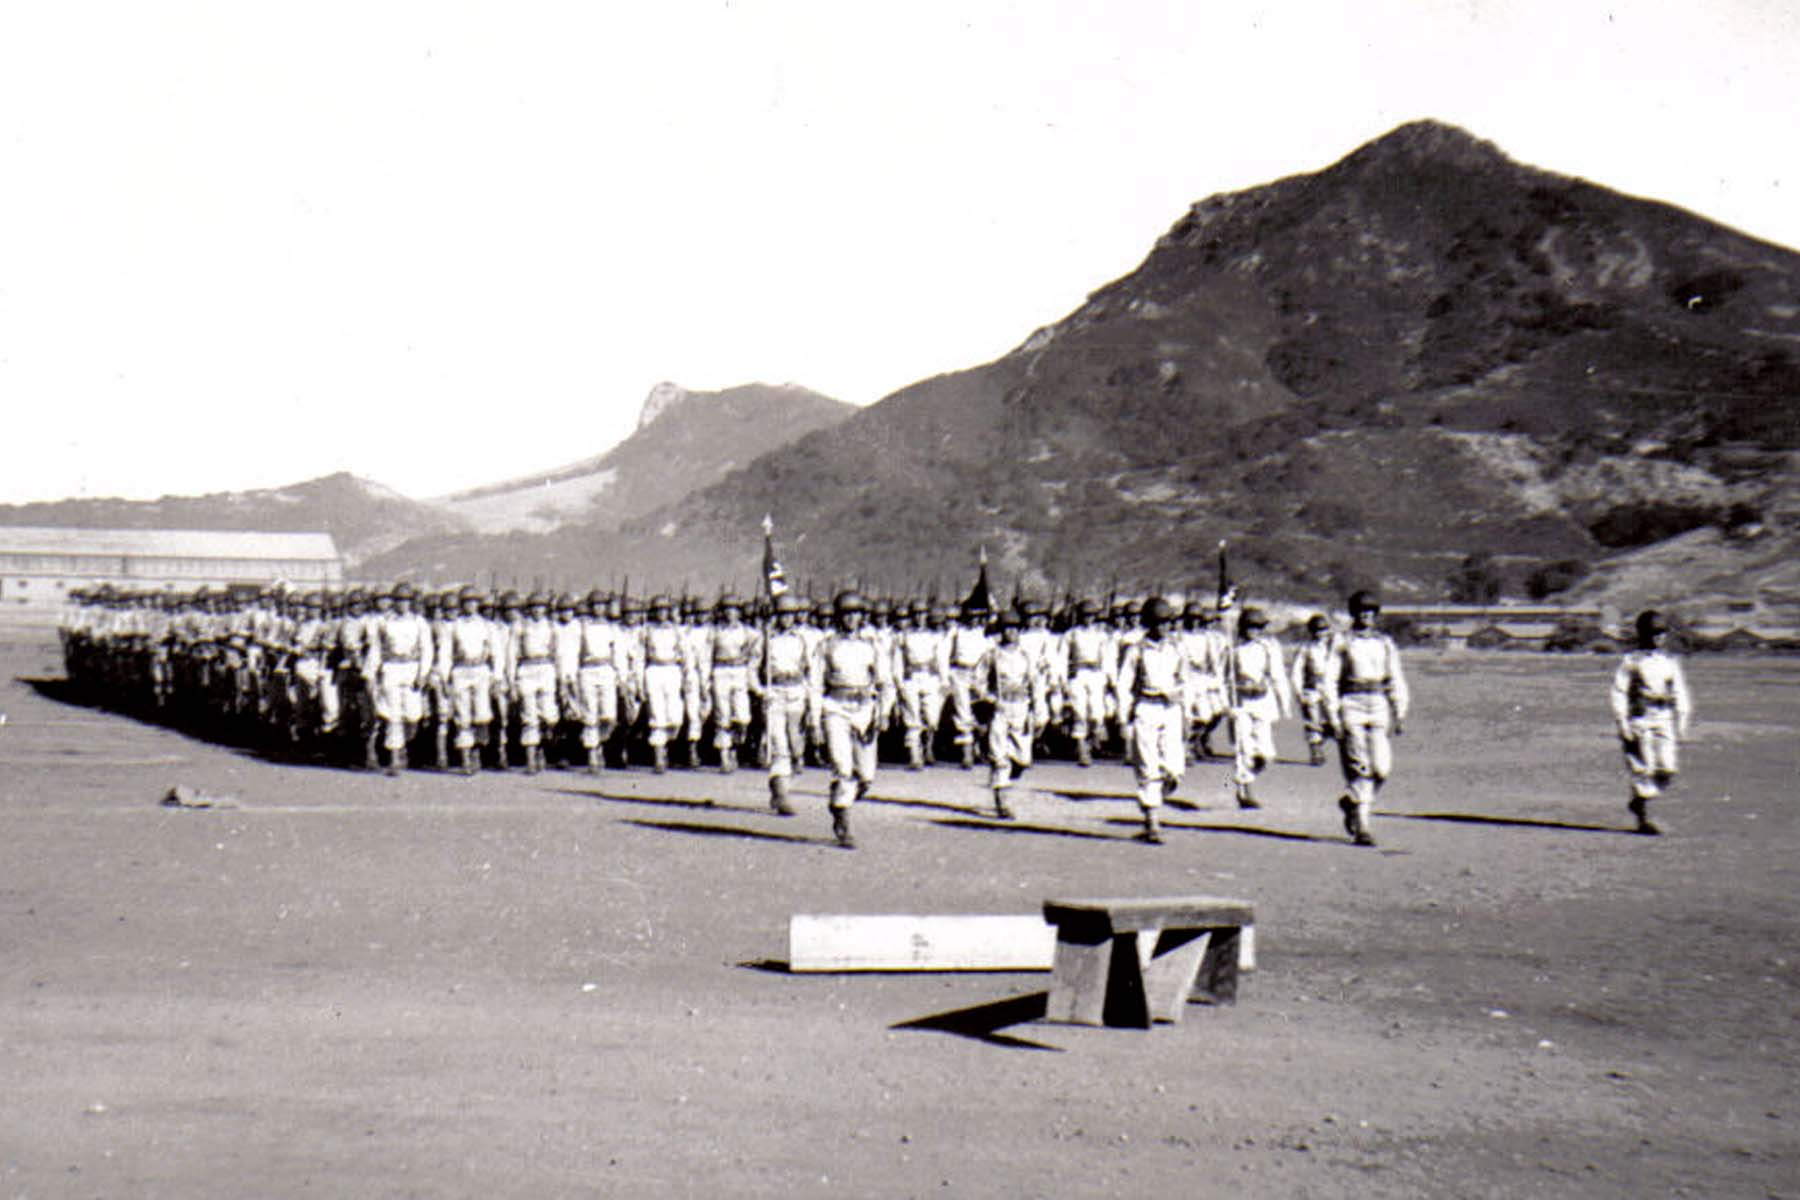 C29 Camp San Luis Obispo - August 2_ 1943 parade - The Second Battalion moves down the field